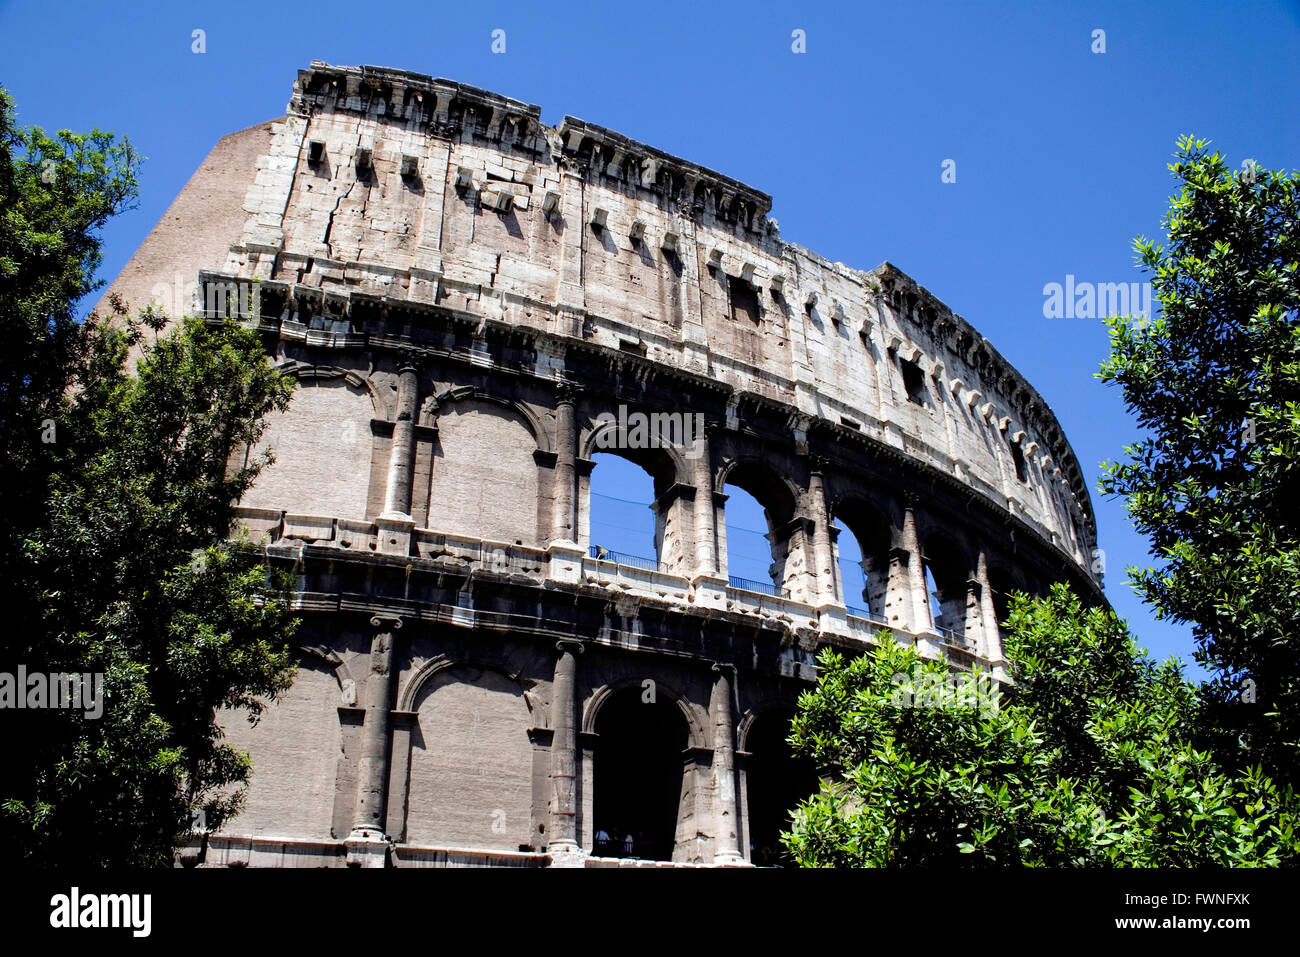 The Coliseum in Rome, Italy, Europe, Colosseum Coliseum travel traveller holiday vacation trip famous landmark renowned - Stock Image